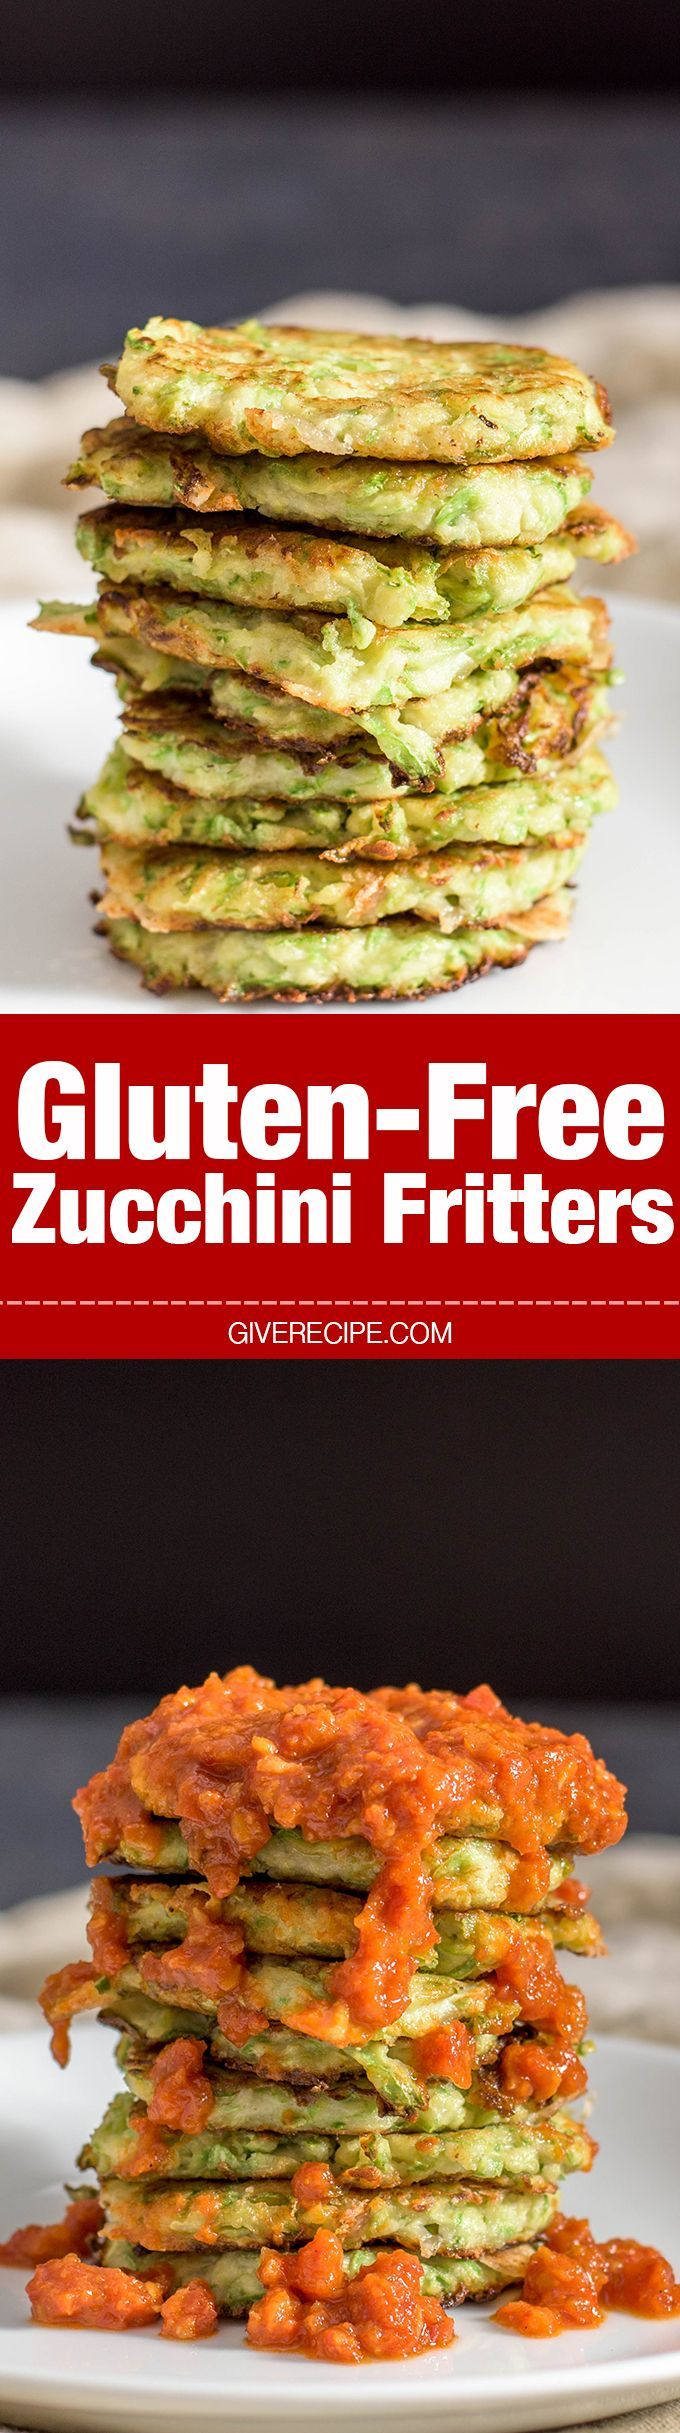 Gluten-free Zucchini Fritters are loaded with mozzarella and flavored with garlic. Serve it with an amazingly tasty tomato sauce.- giverecipe.com